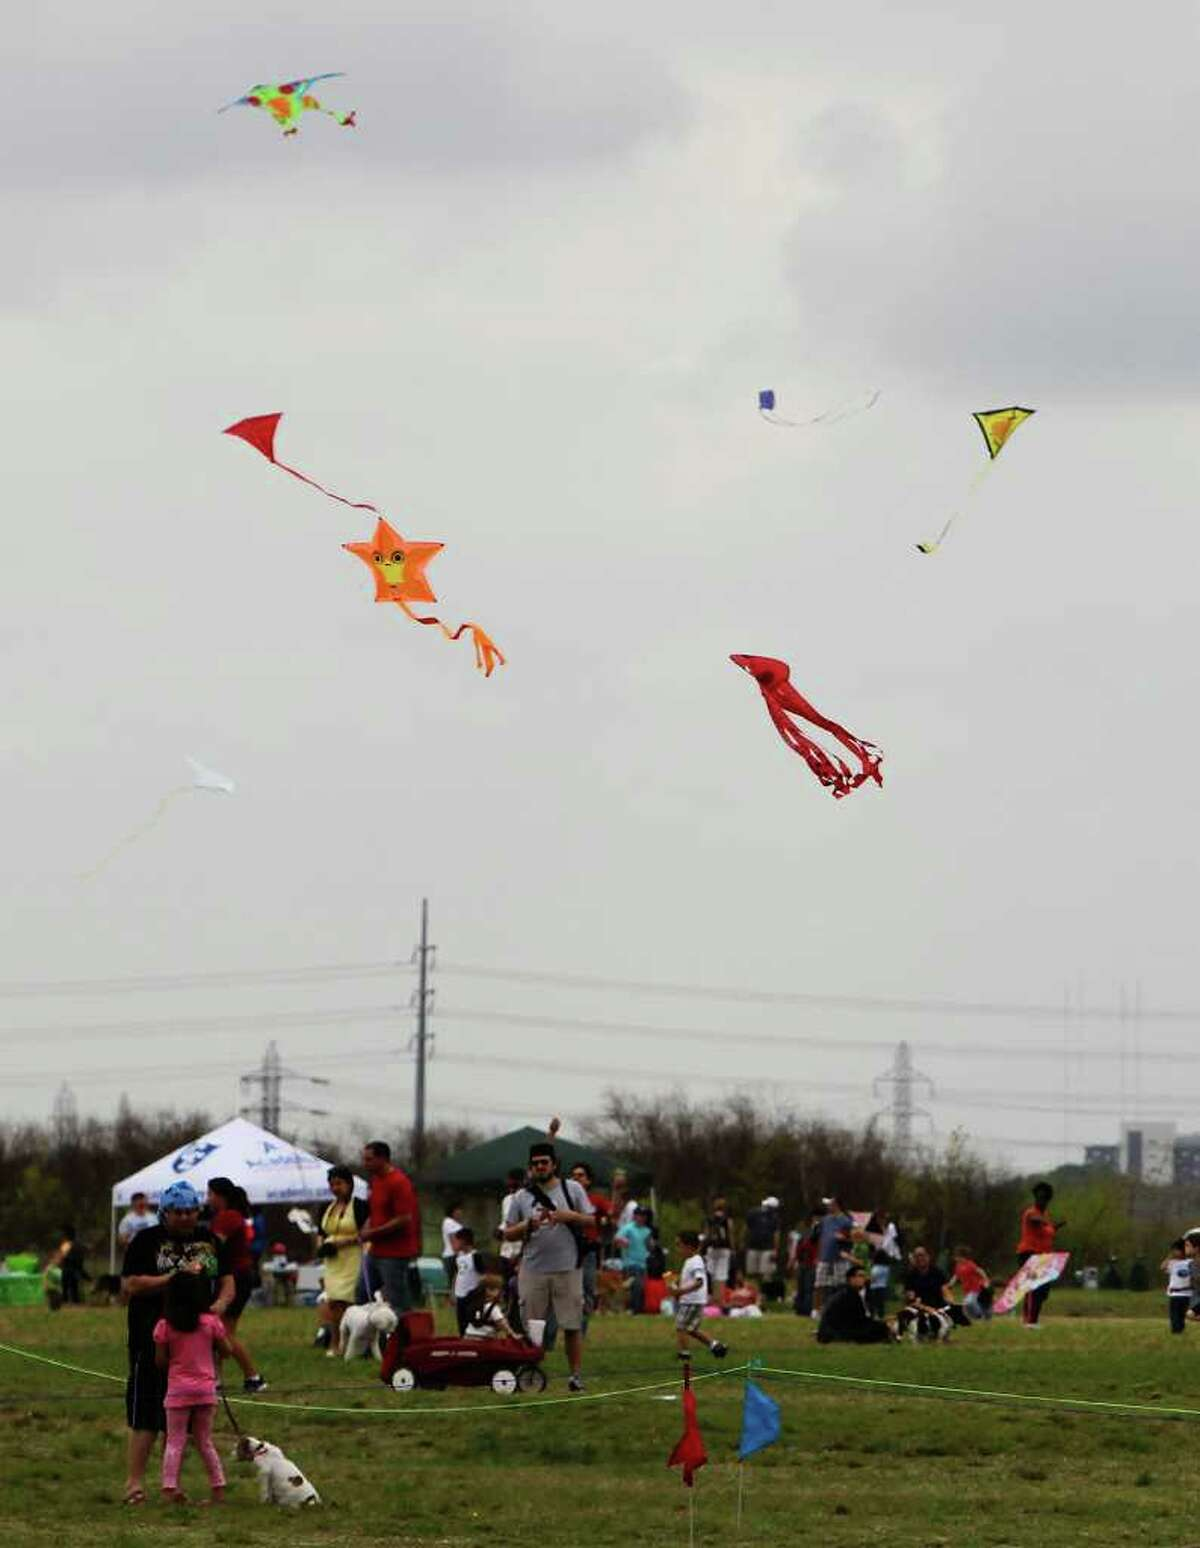 Kites swirls around in the breeze during